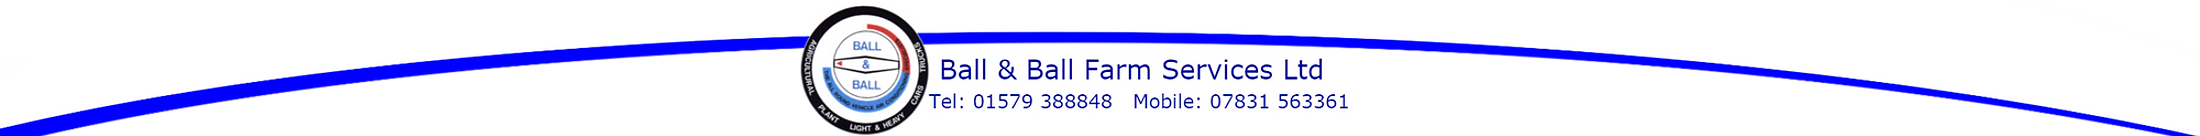 Ball and Ball Farm Services